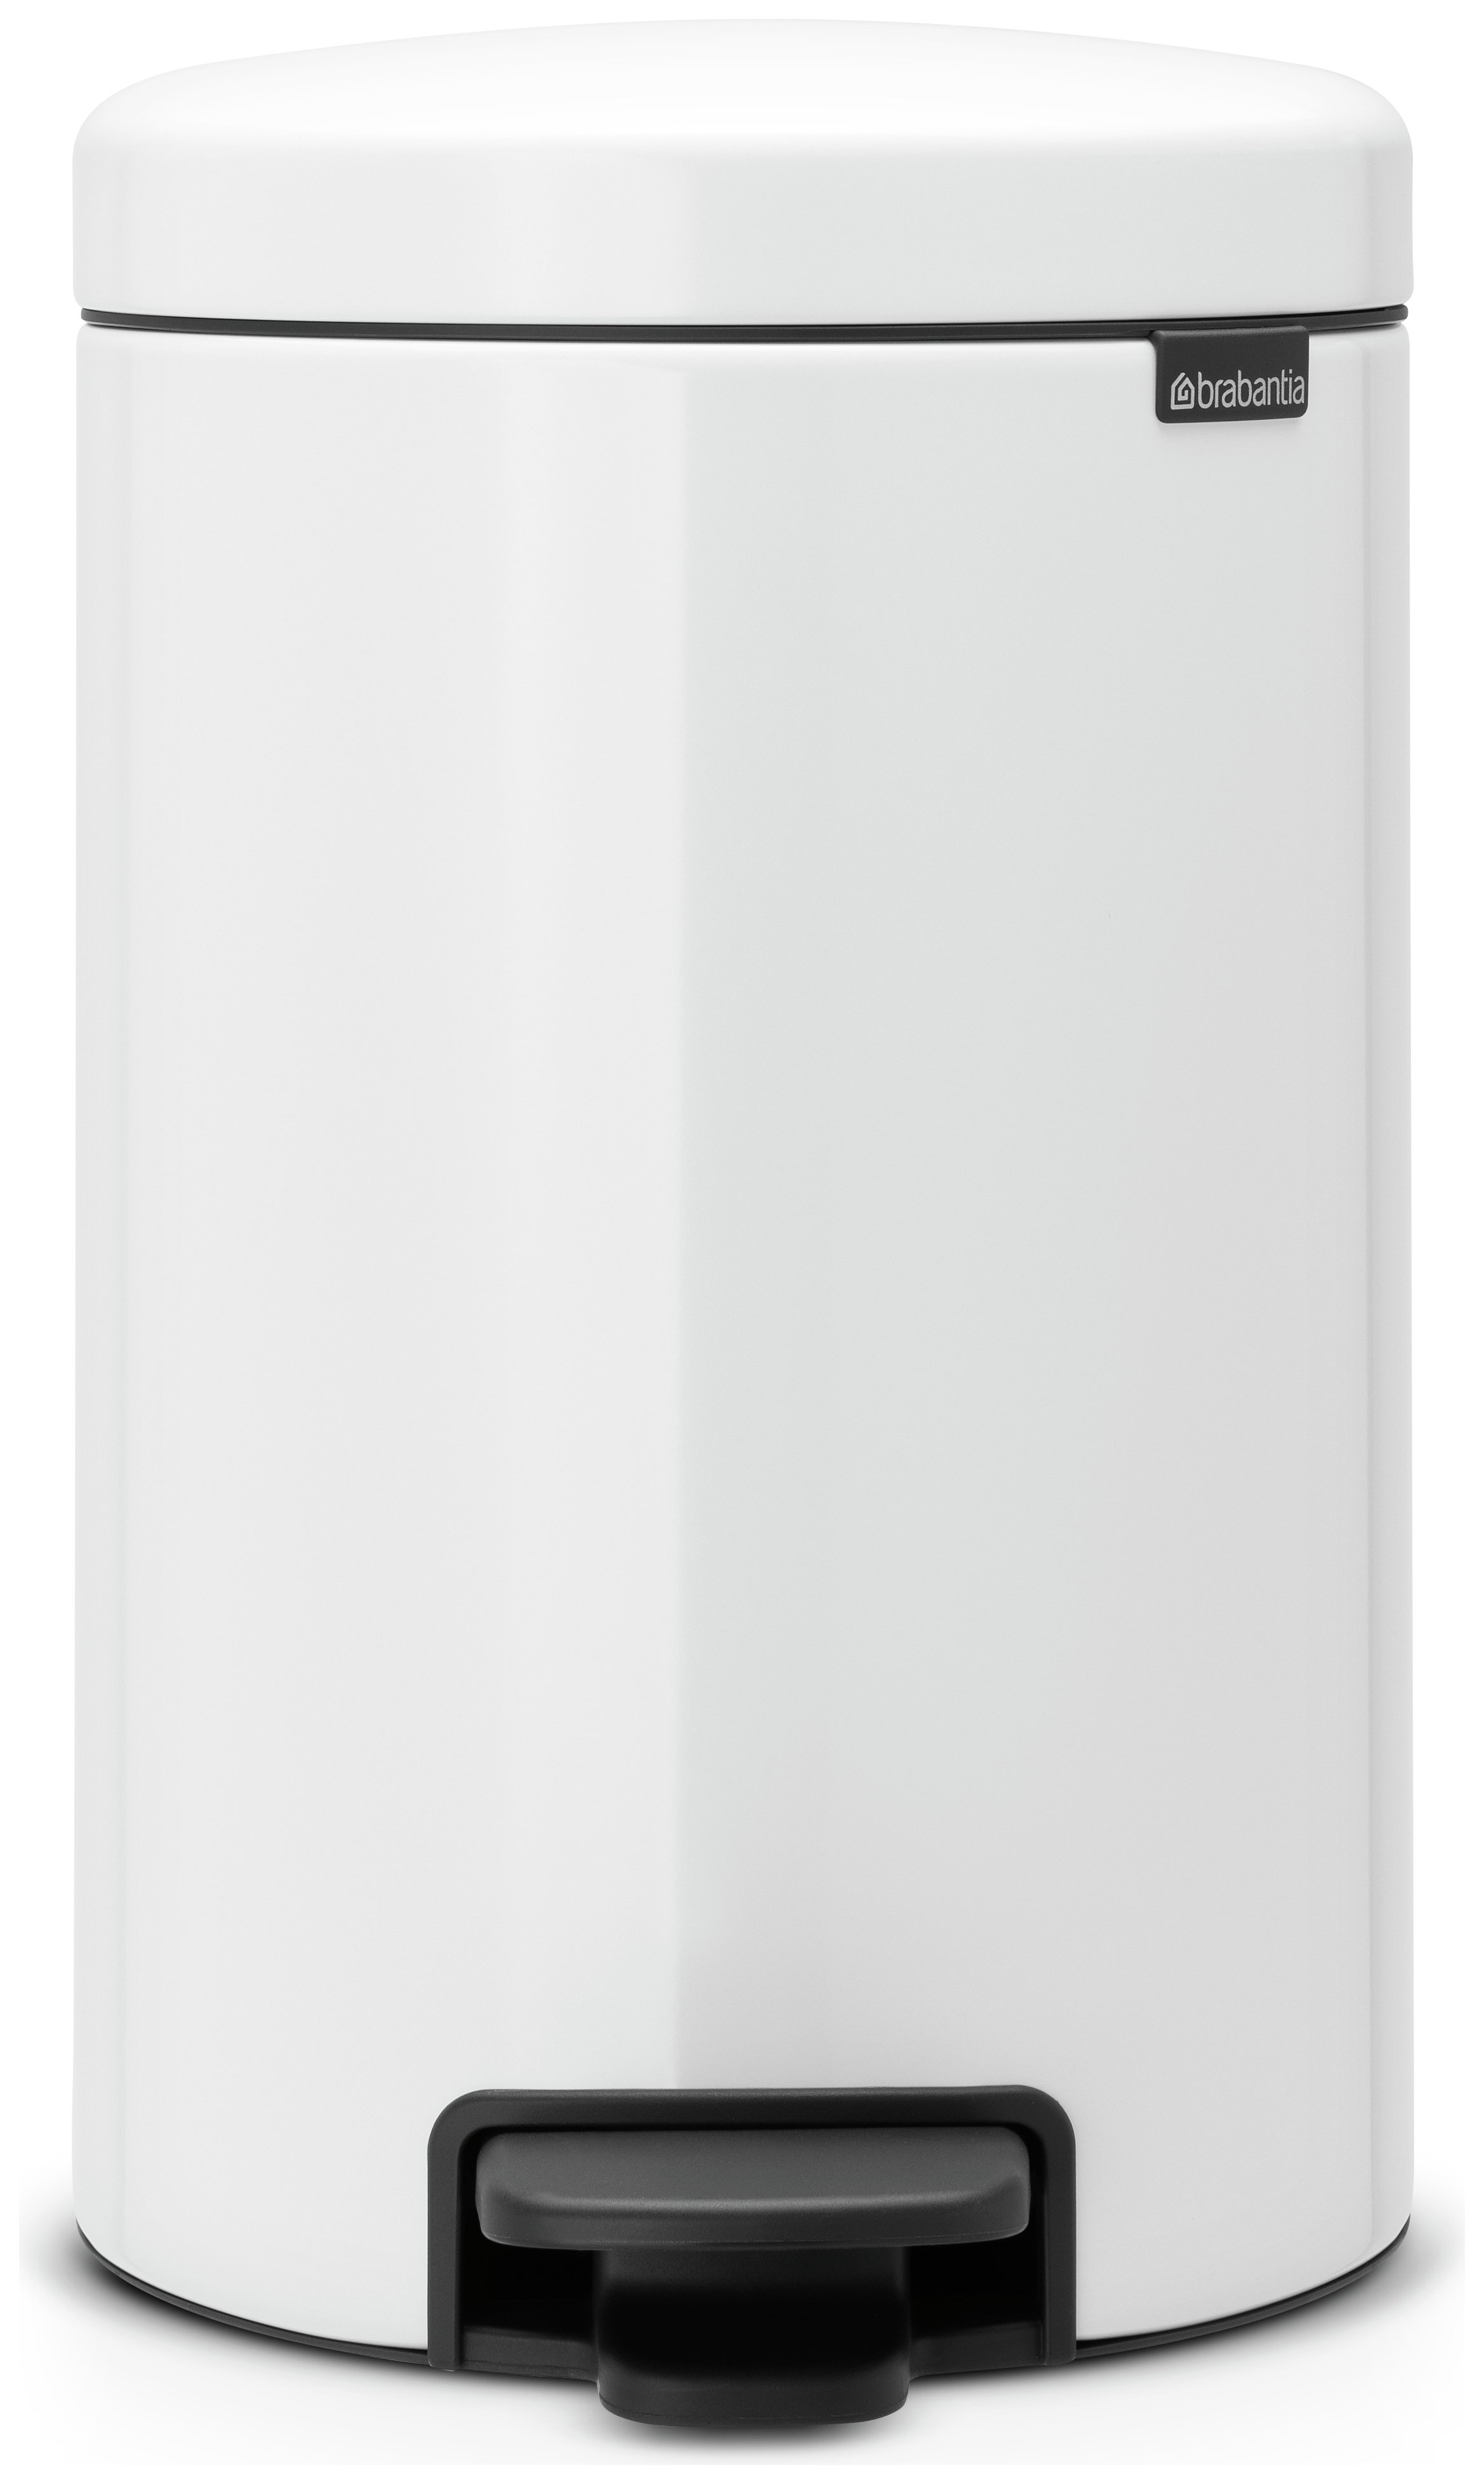 White Kitchen Bin buy brabantia newlcon 12 litre pedal bin - white at argos.co.uk